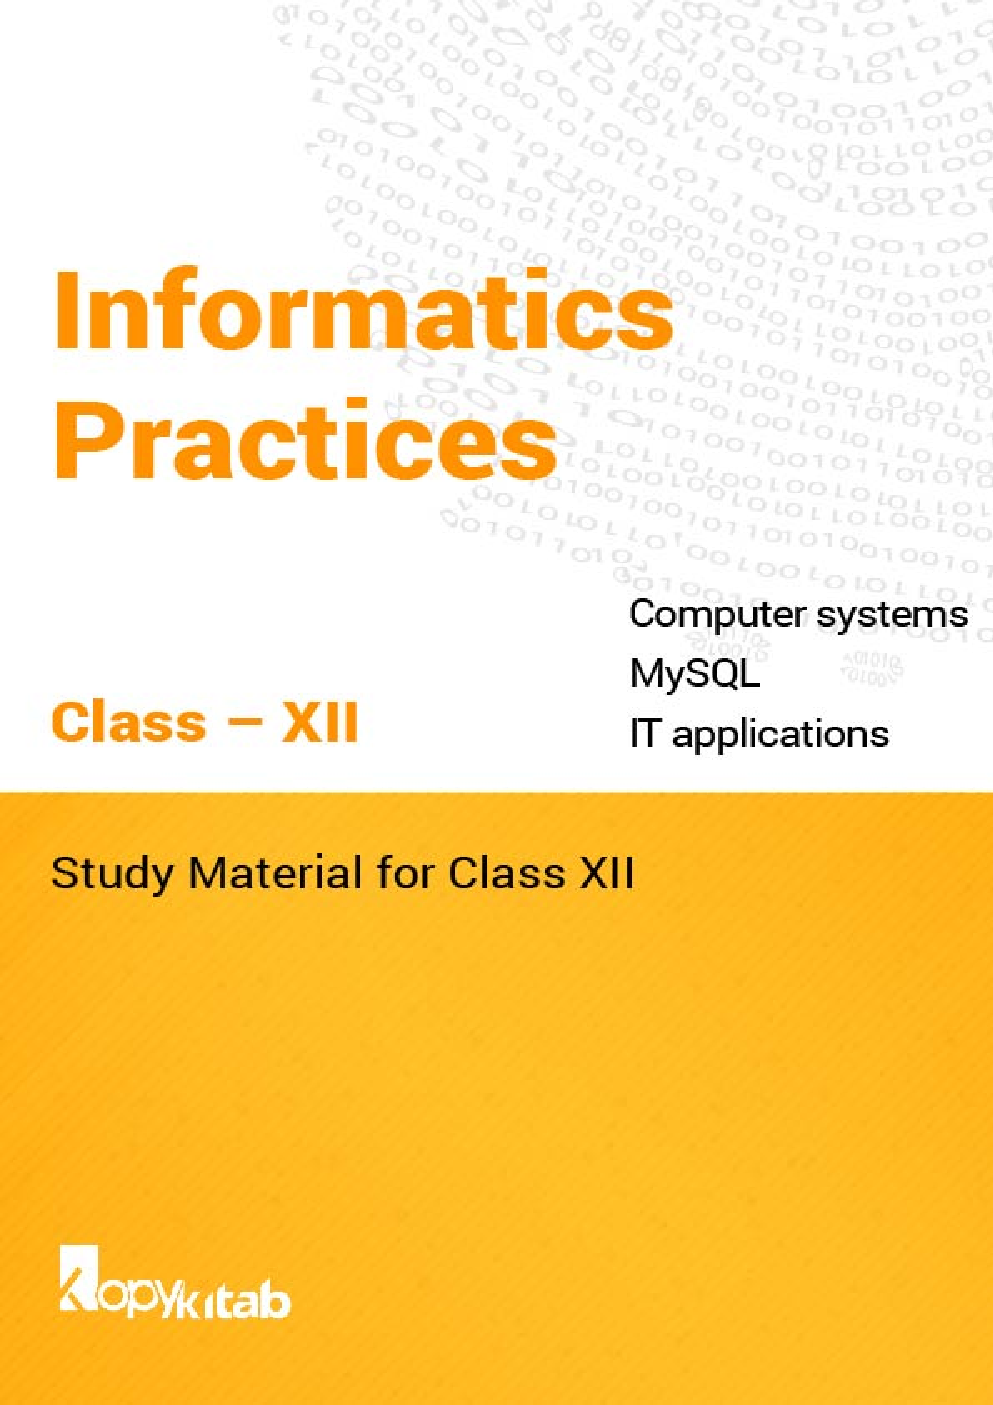 Informatics Practices Study Material for Class XII - Page 1